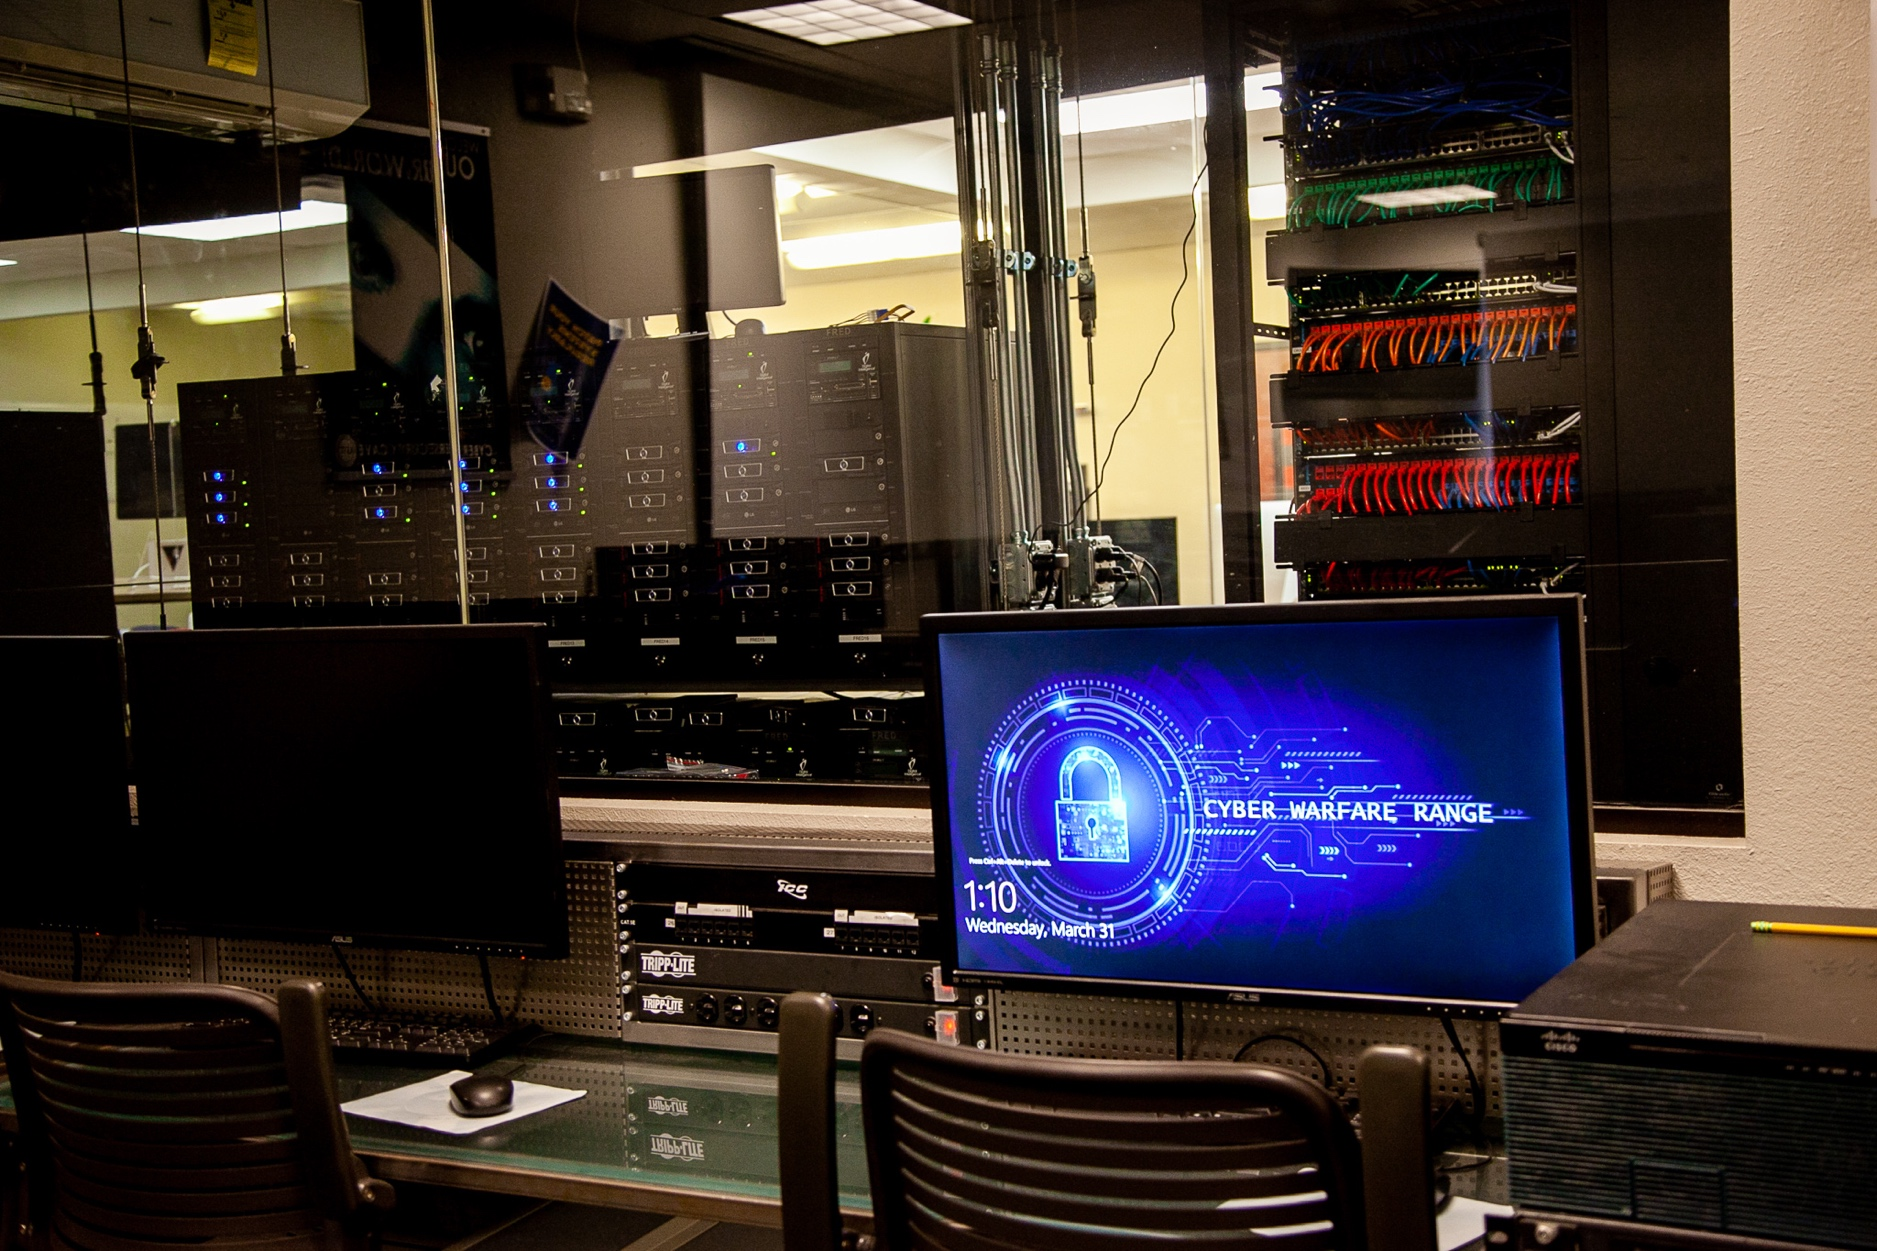 Cyber Security Cave at UAT